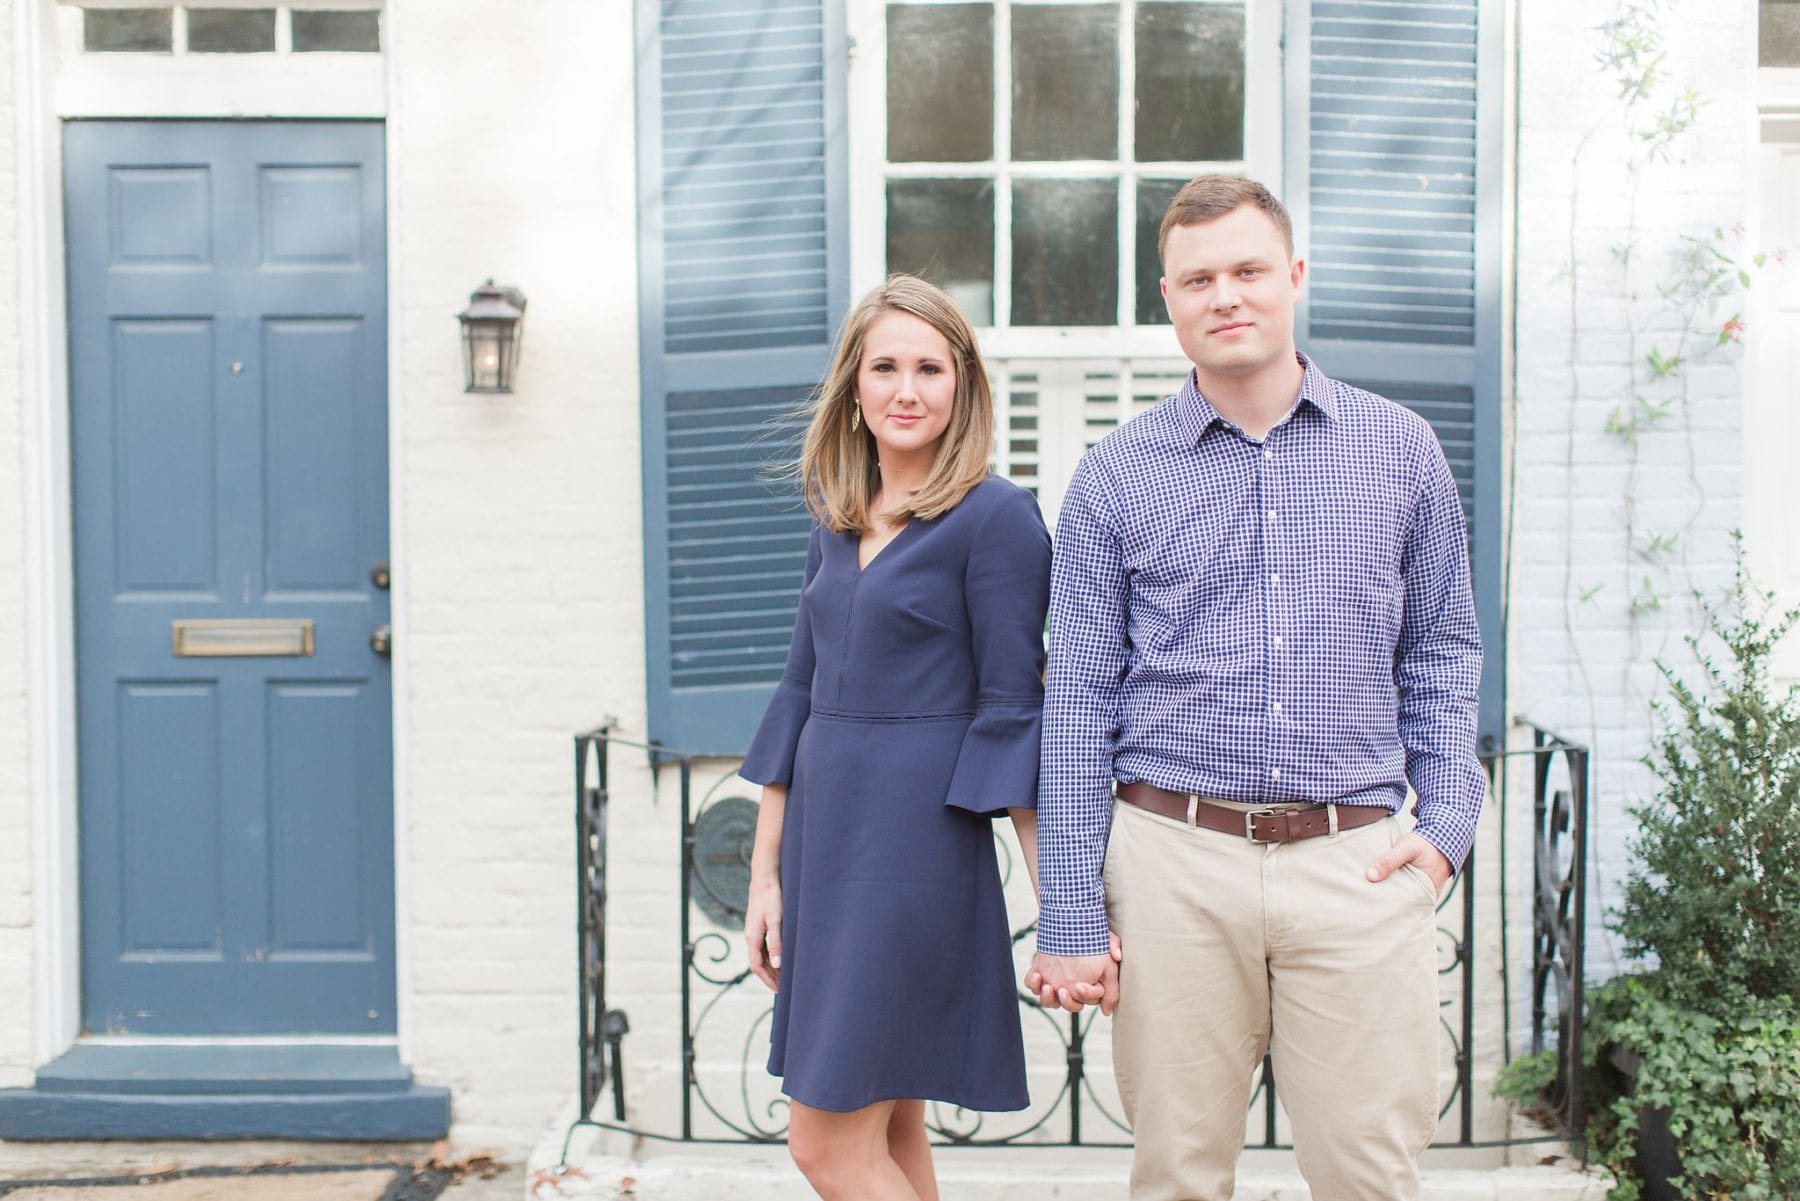 Springtime Old Town Alexandria Engagement Session Matt & Maxie Megan Kelsey Photography-98.jpg